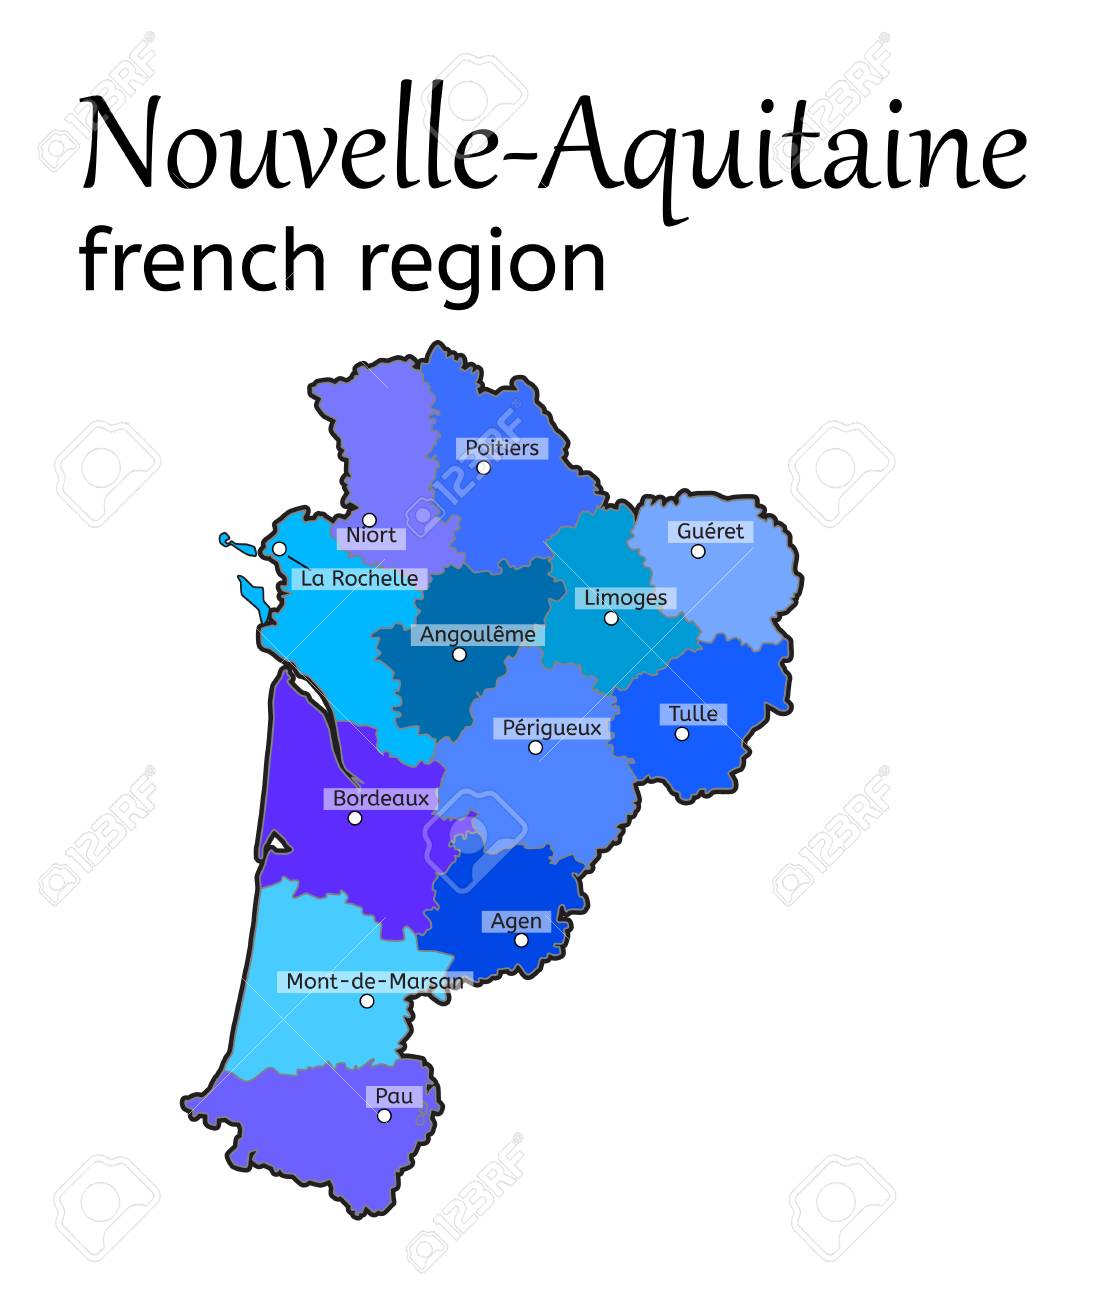 Nouvelle Aquitaine French Region Map On White In Vector Royalty Free Cliparts Vectors And Stock Illustration Image 67831506